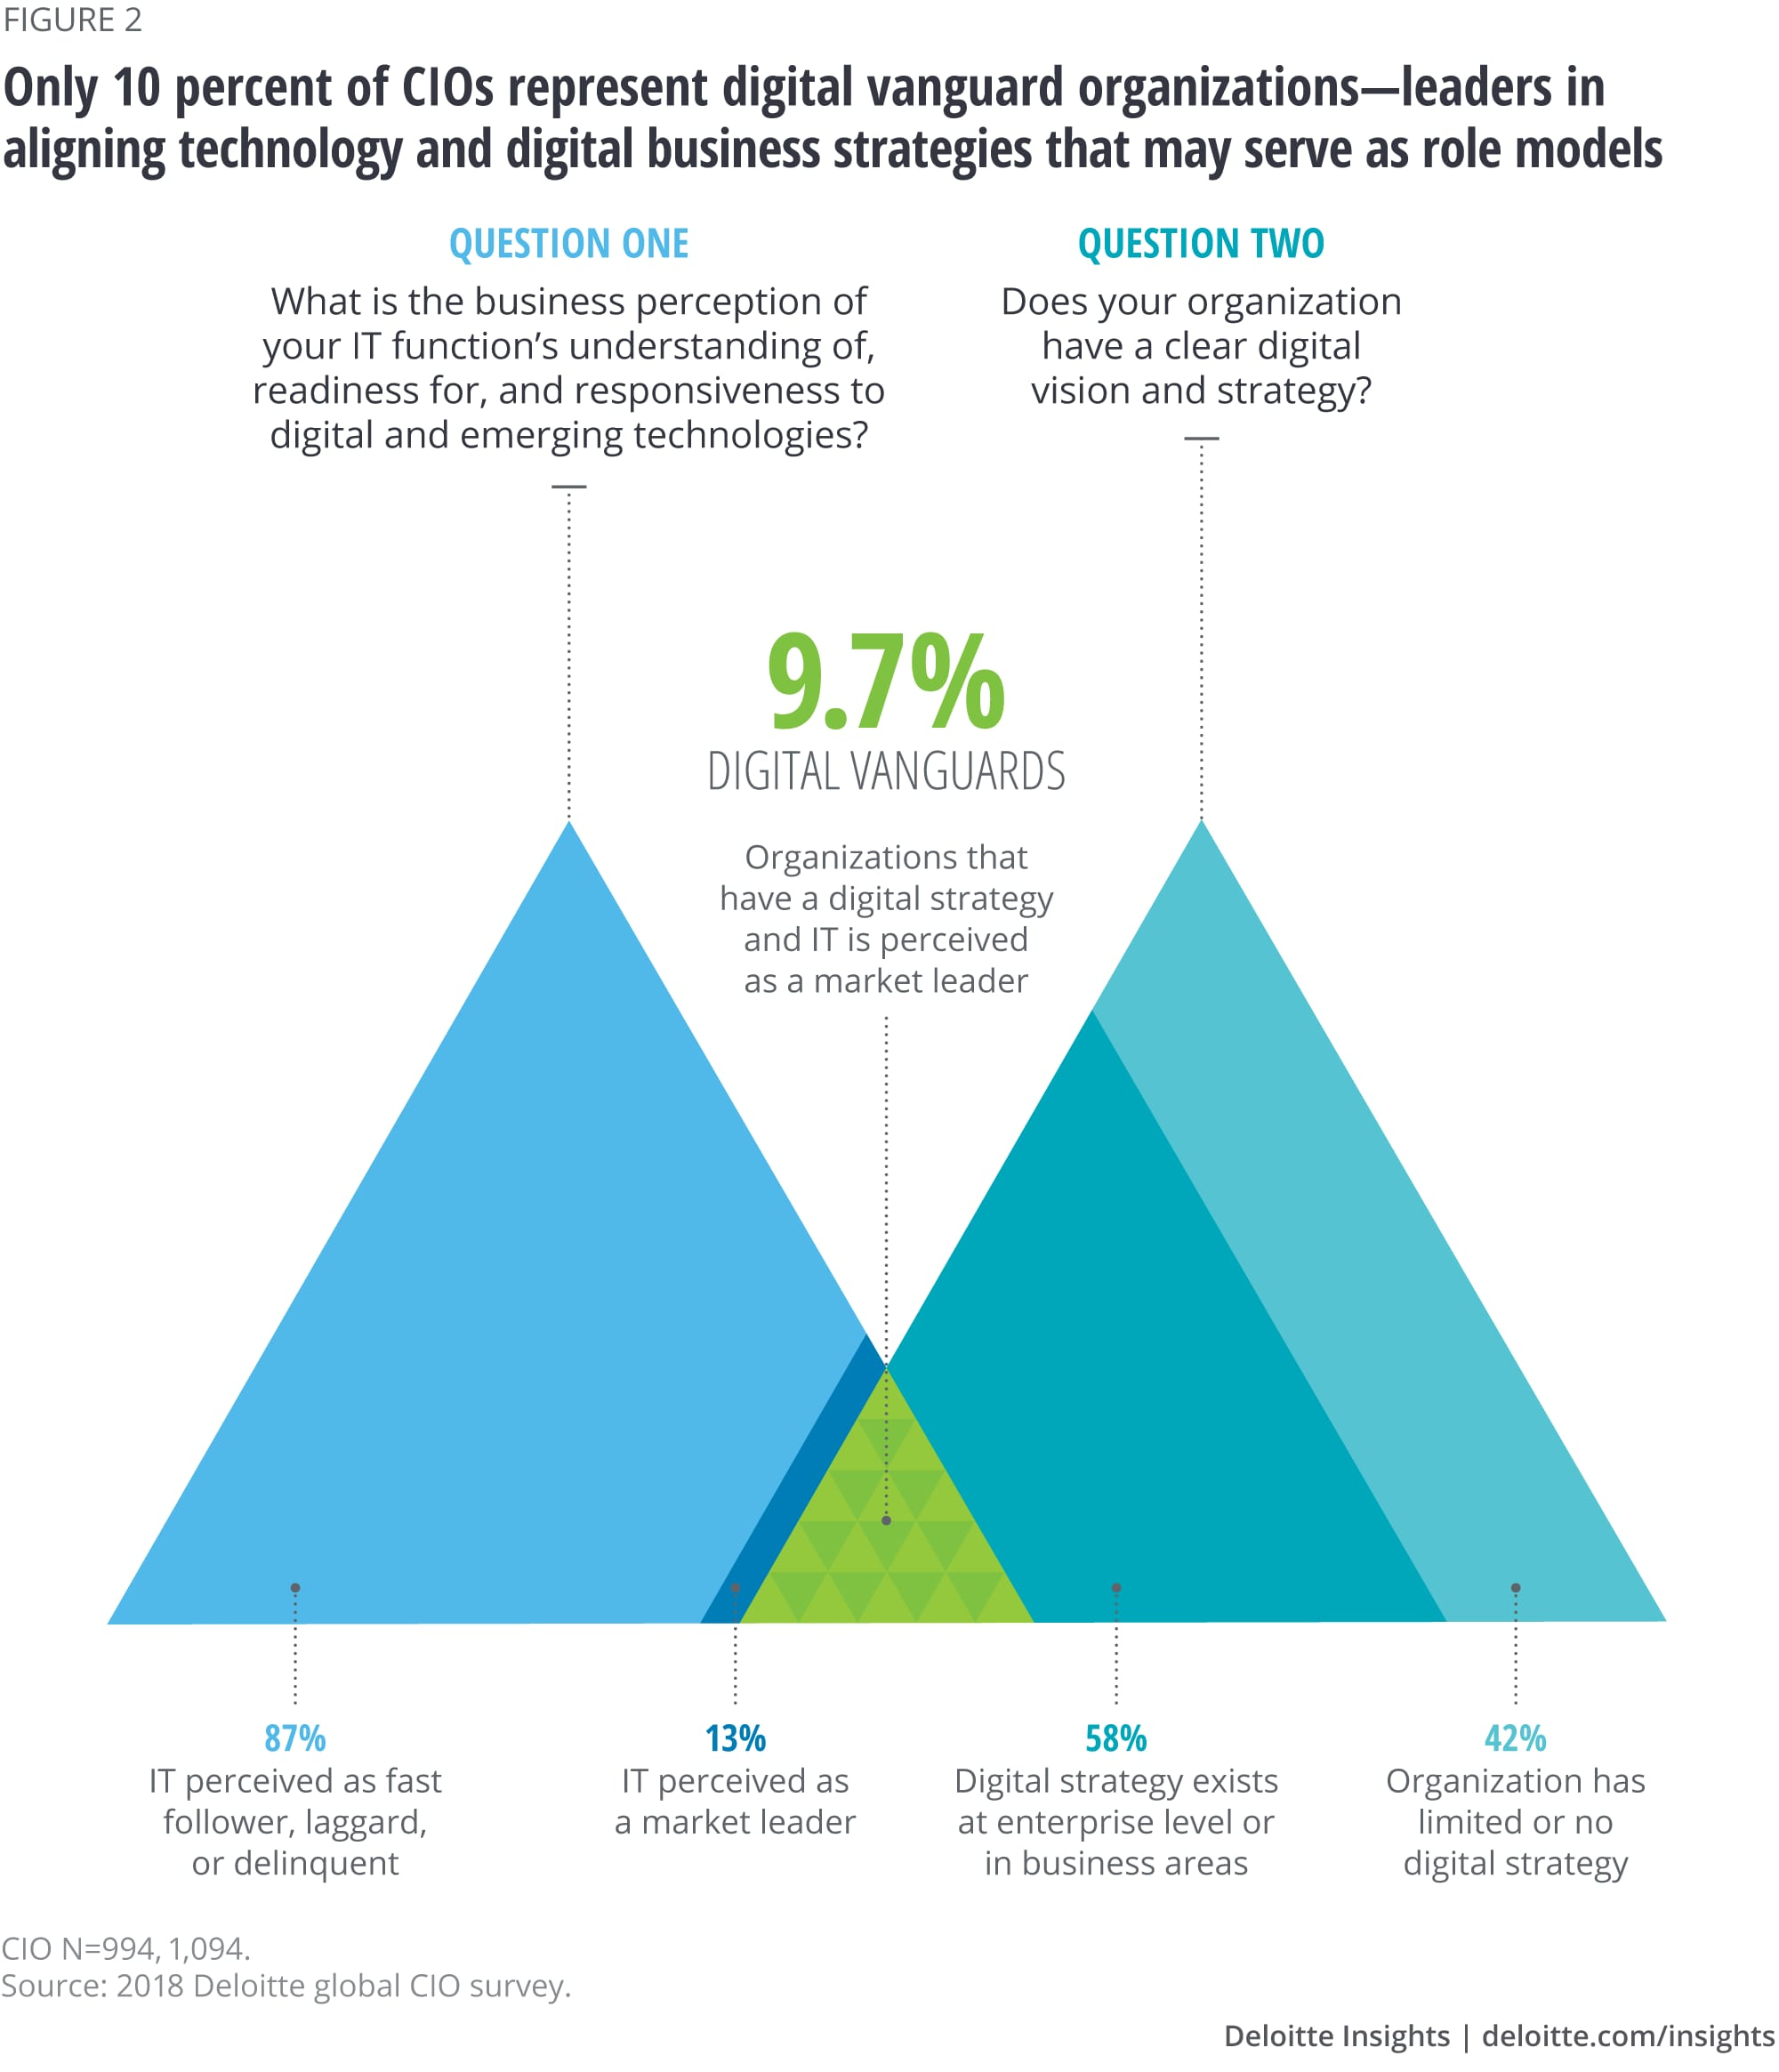 Only 10 percent of CIOs represent digital vanguard organizations—leaders in aligning technology and digital business strategies that may serve as role models